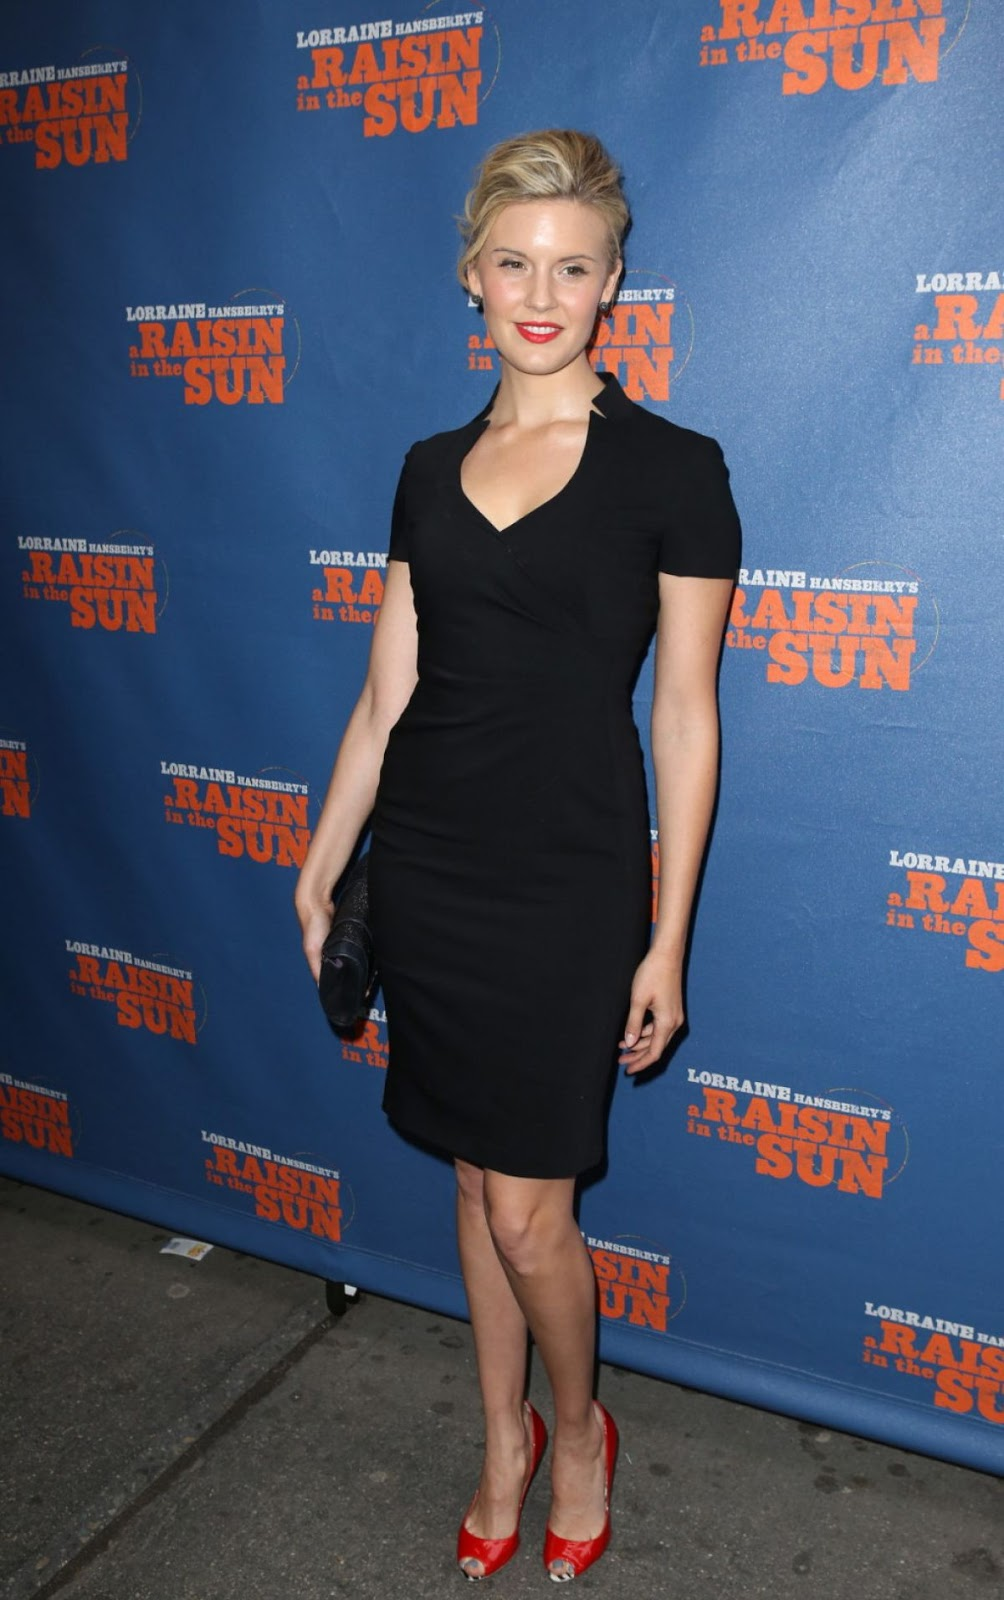 '478' actress Maggie Grace at a Raisin in The sun Broadway Opening Night in NY